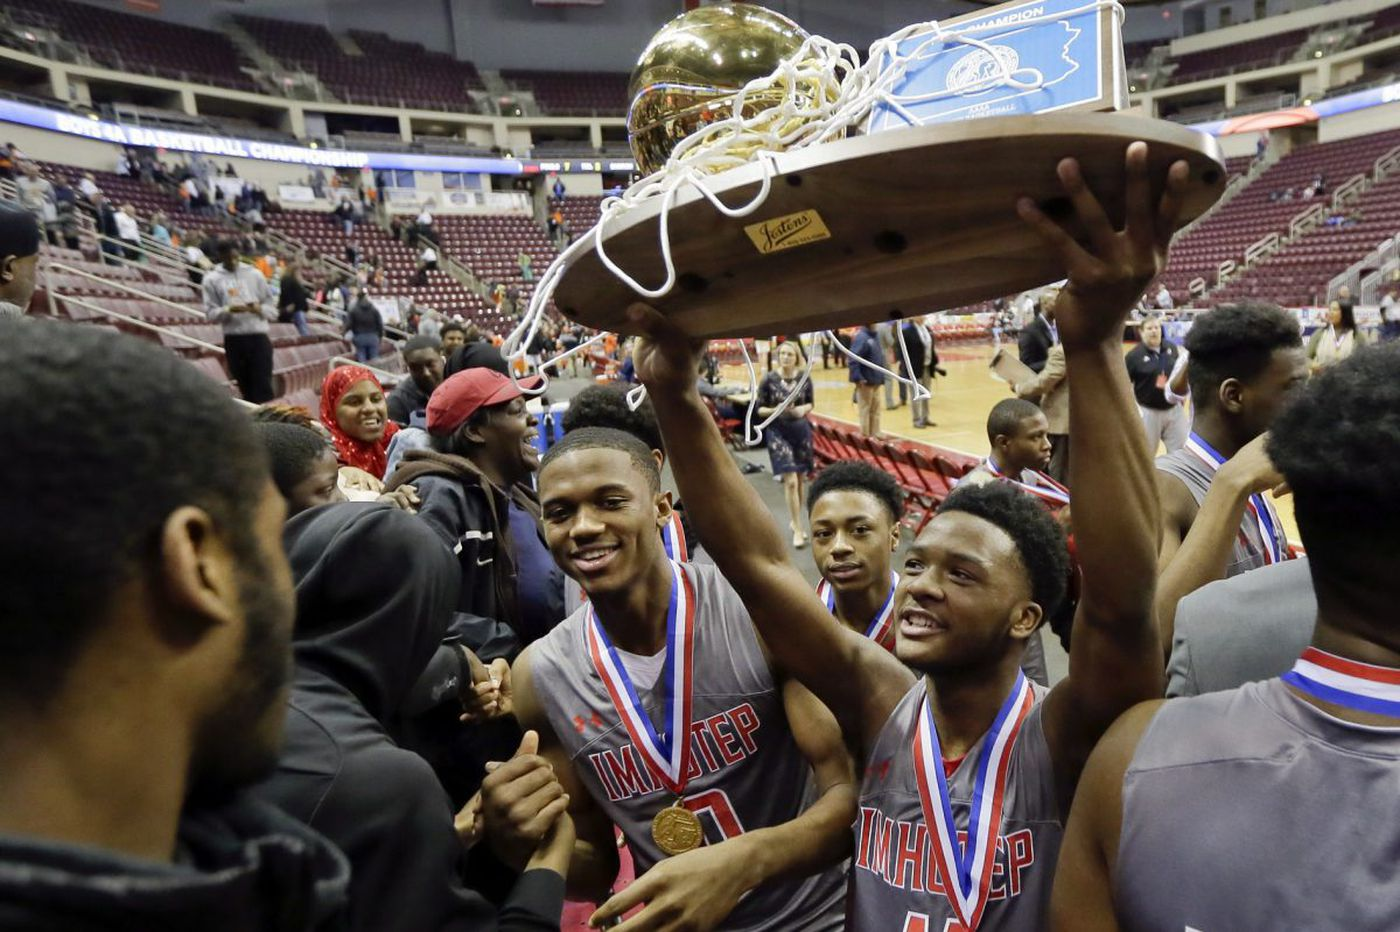 PIAA needs to change its playoff model, at least in basketball and football | Rick O'Brien